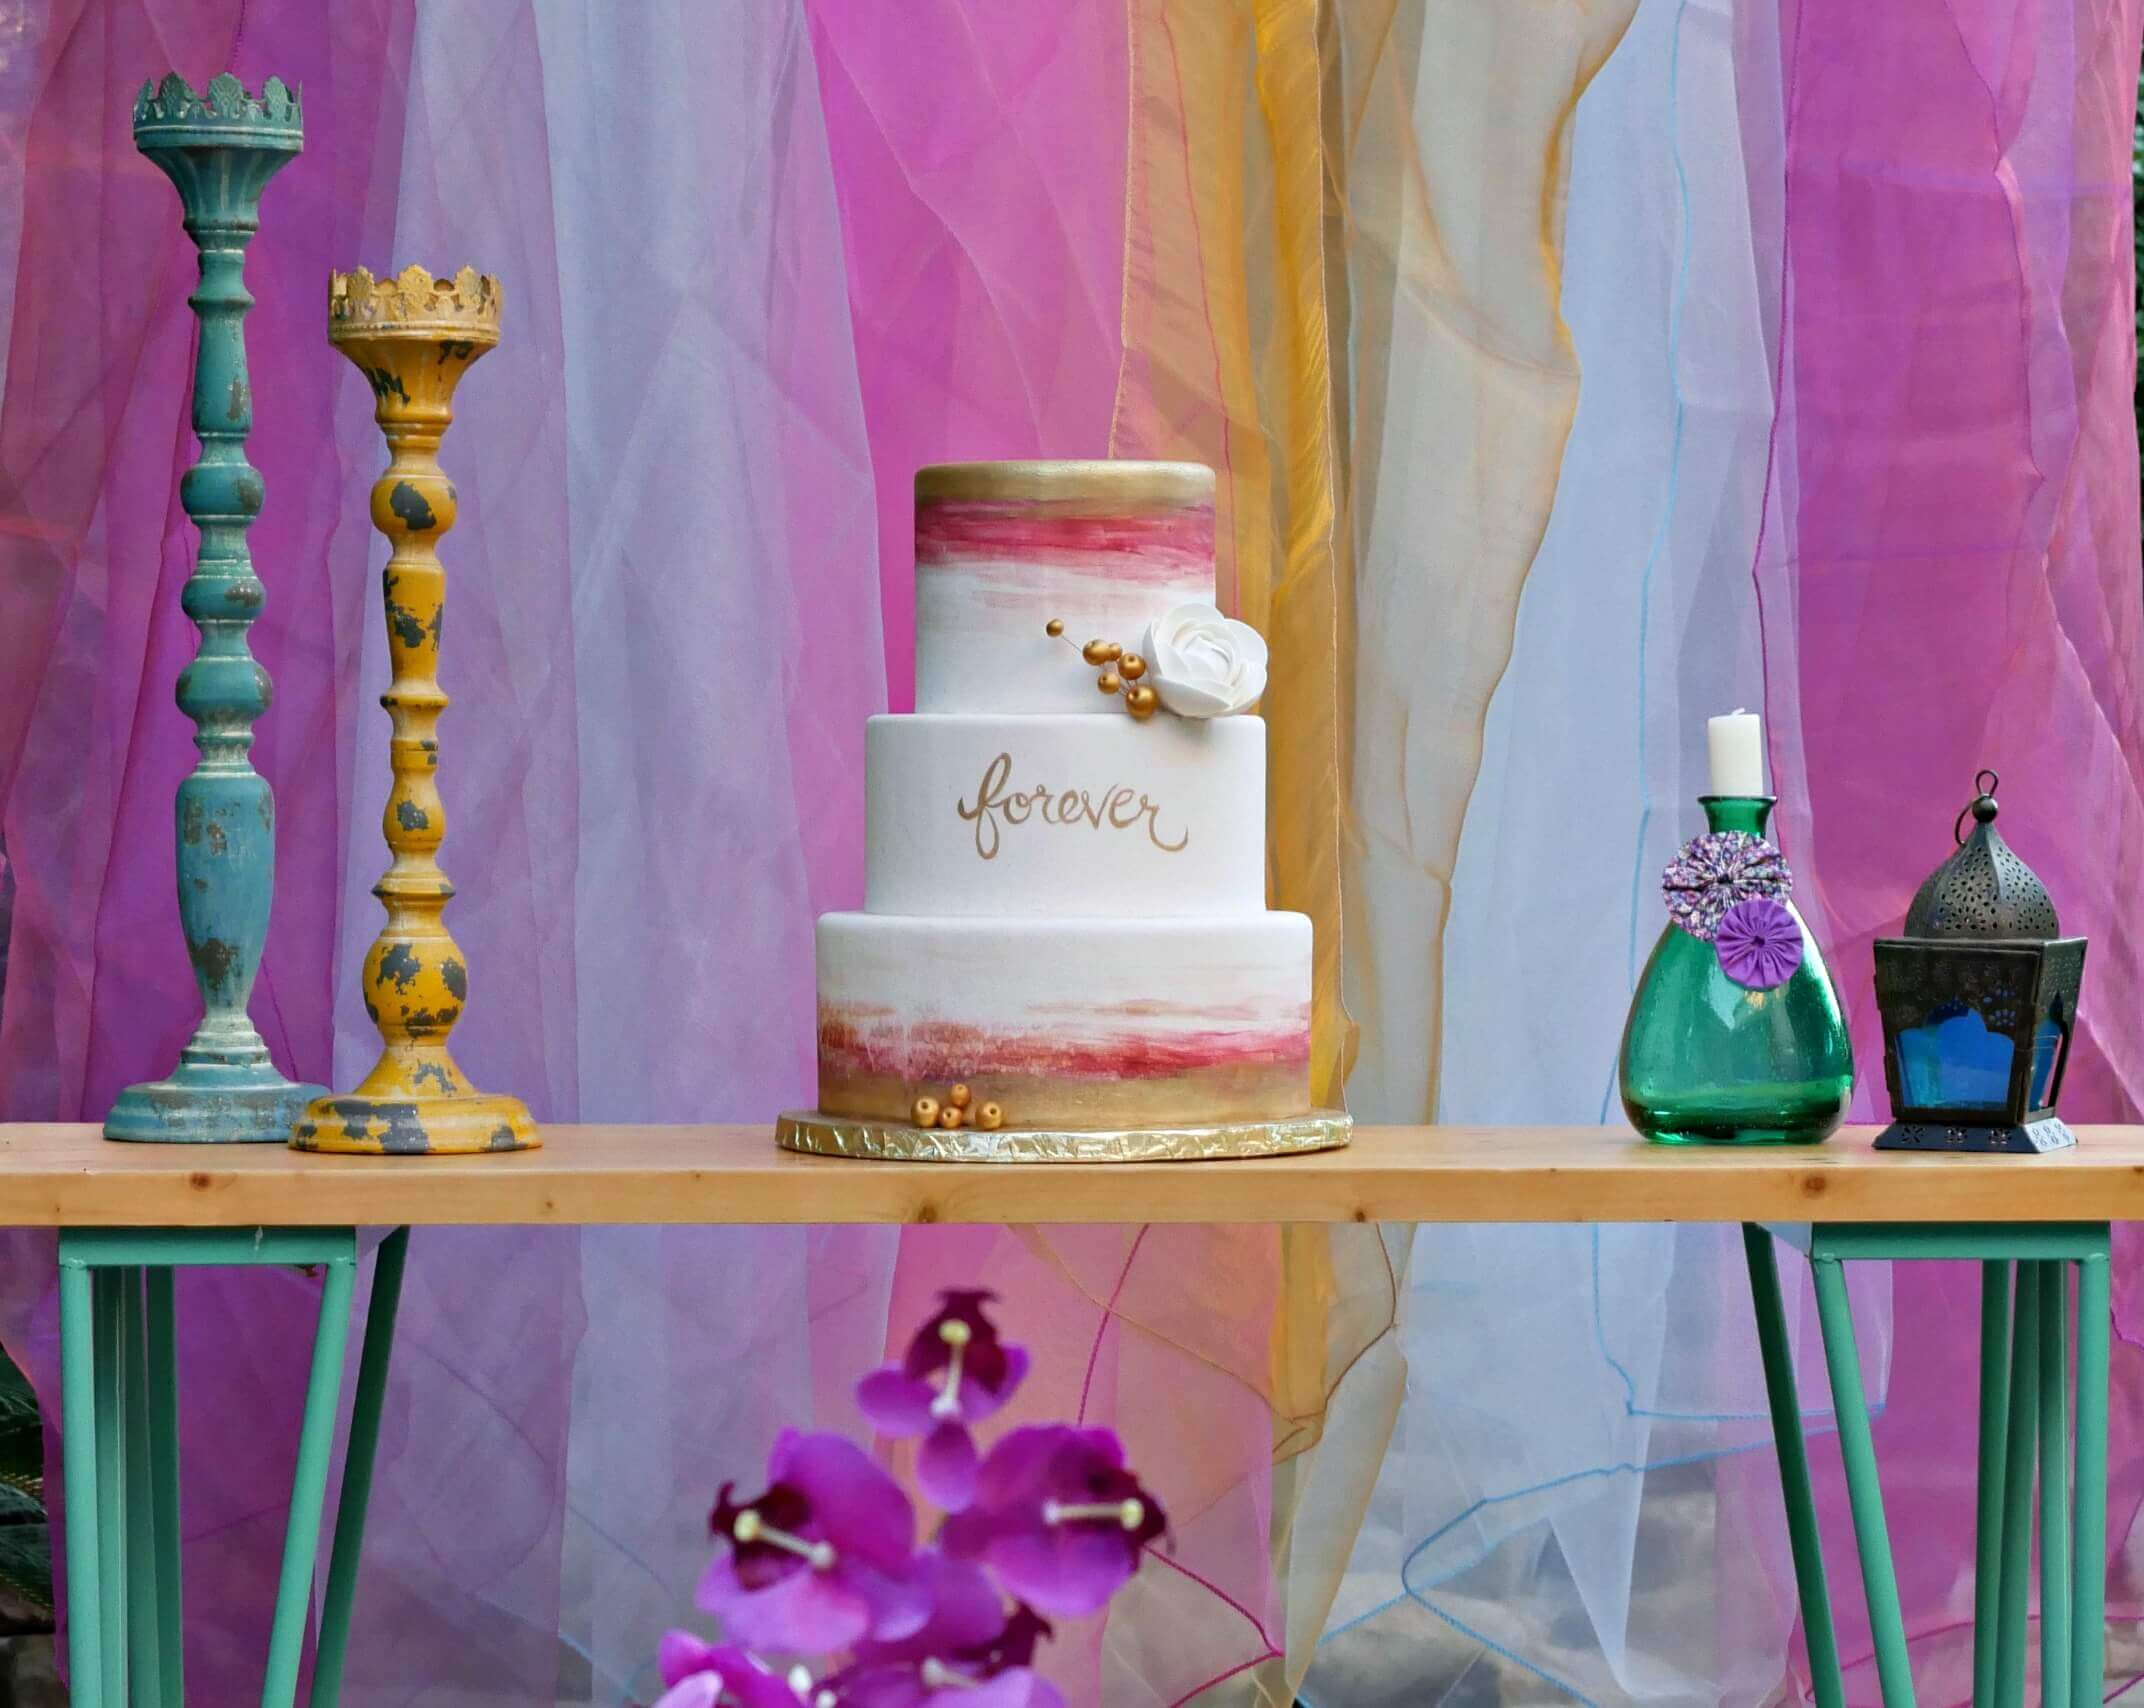 Love this wedding cake for a Gypsy party theme Engagement Party with a bohemian style. Styling by Mint Event Design www.minteventdesign.com #caketable #weddingcake #weddingcakes #bohochic #watercolorcake